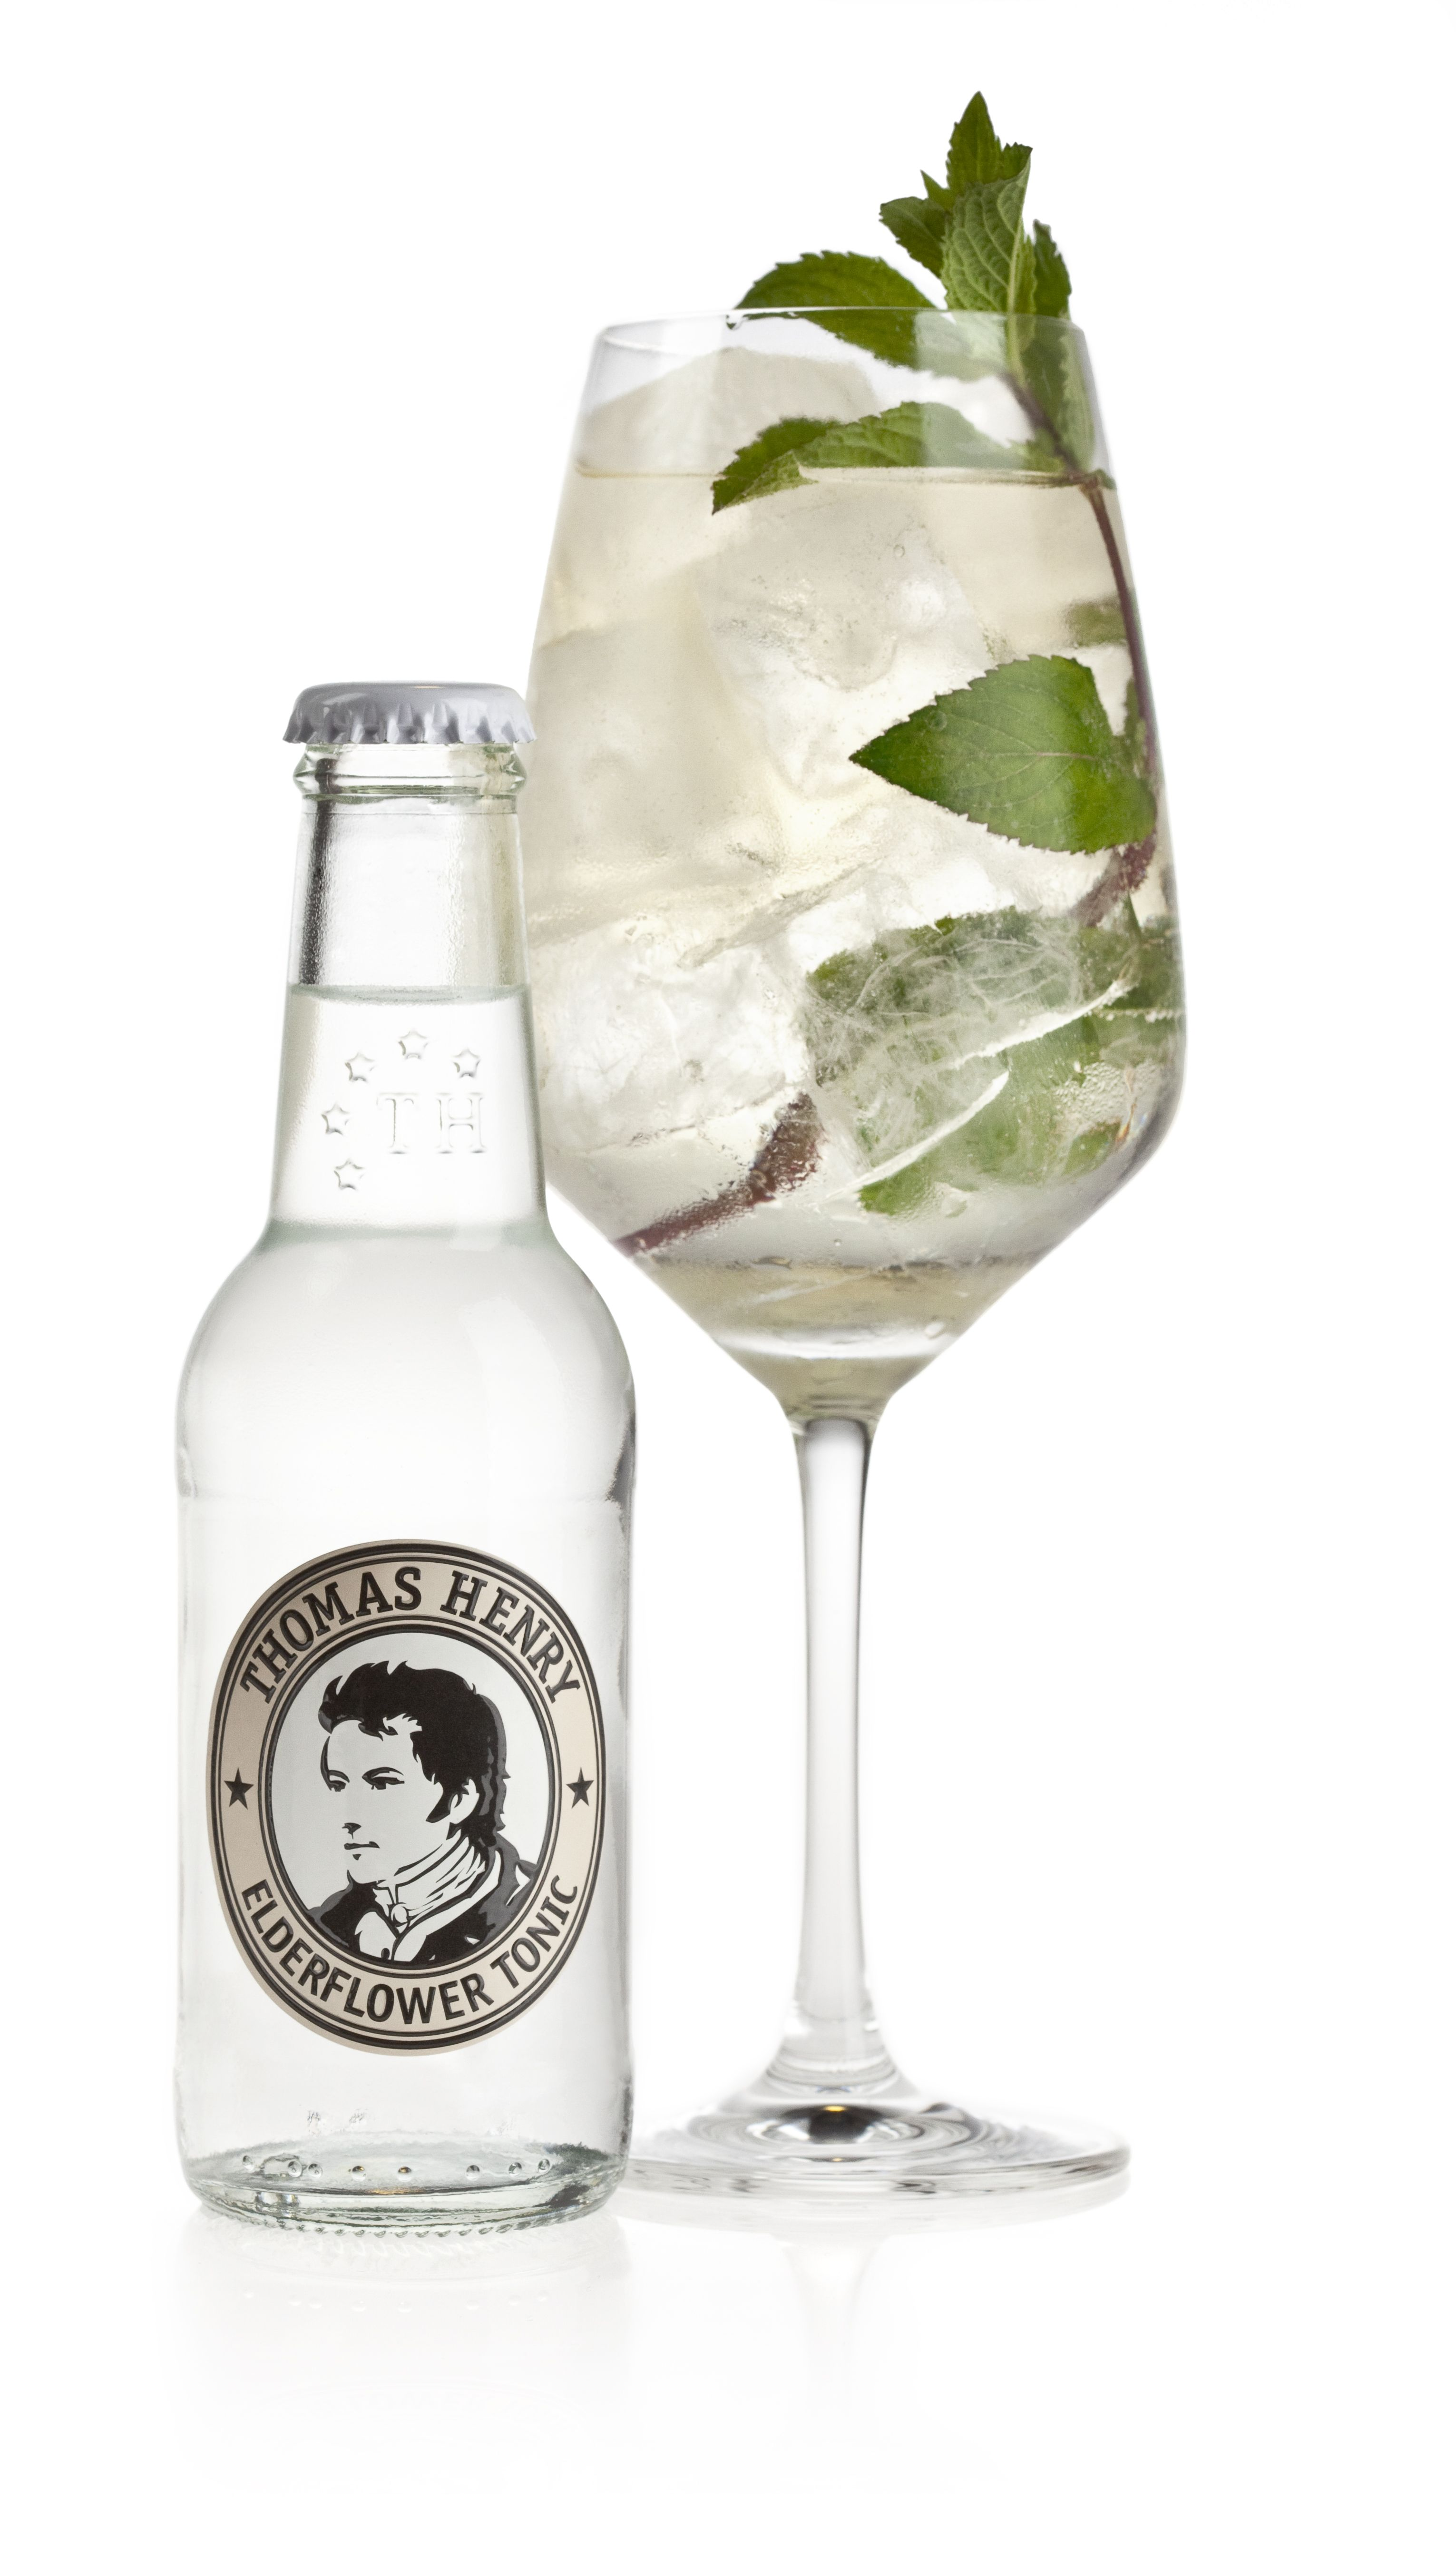 Frische Minze The Henry 5 Cl Lillet Blanc 15 Cl Thomas Henry Elderflower